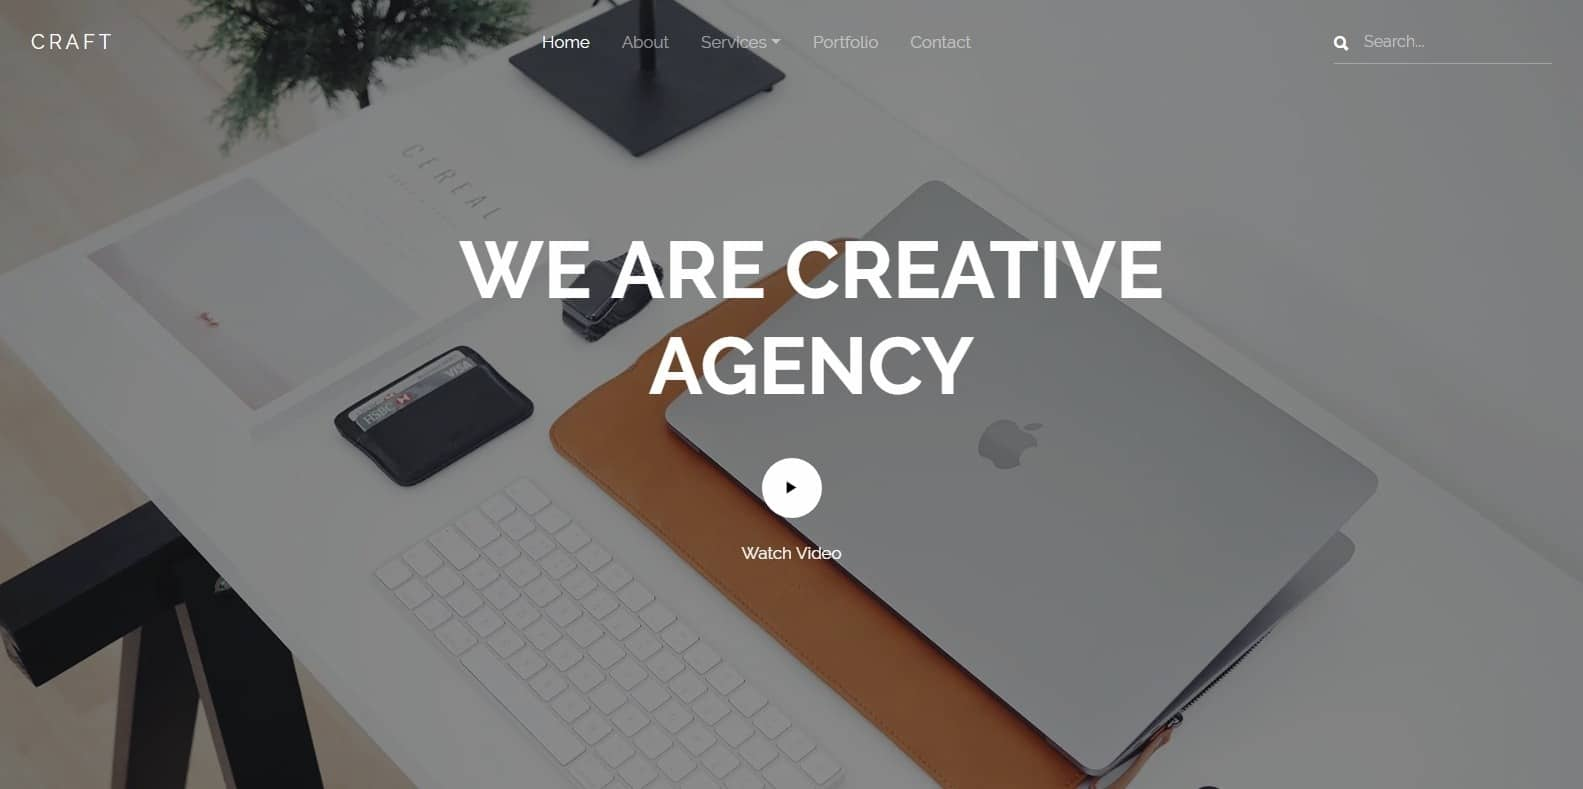 craft-best-website-templates